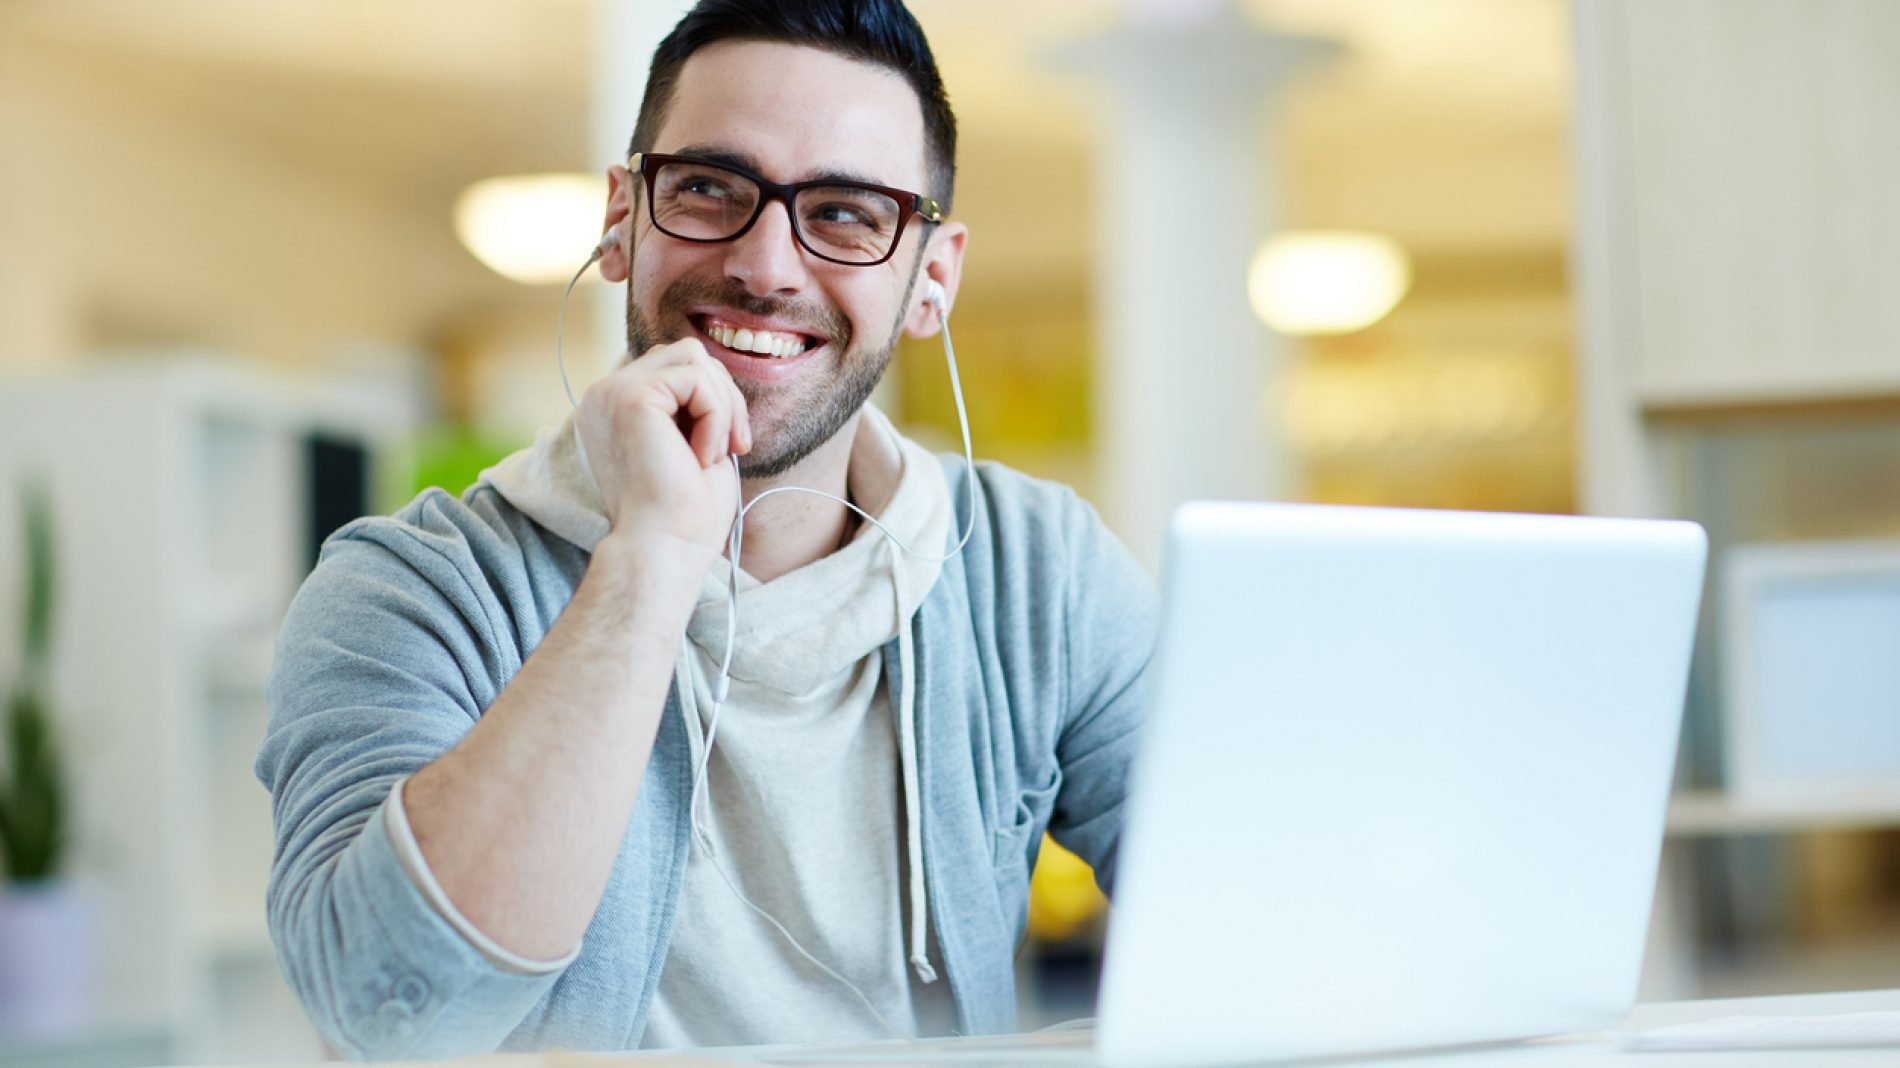 Smiling Adult Man Listening to Music